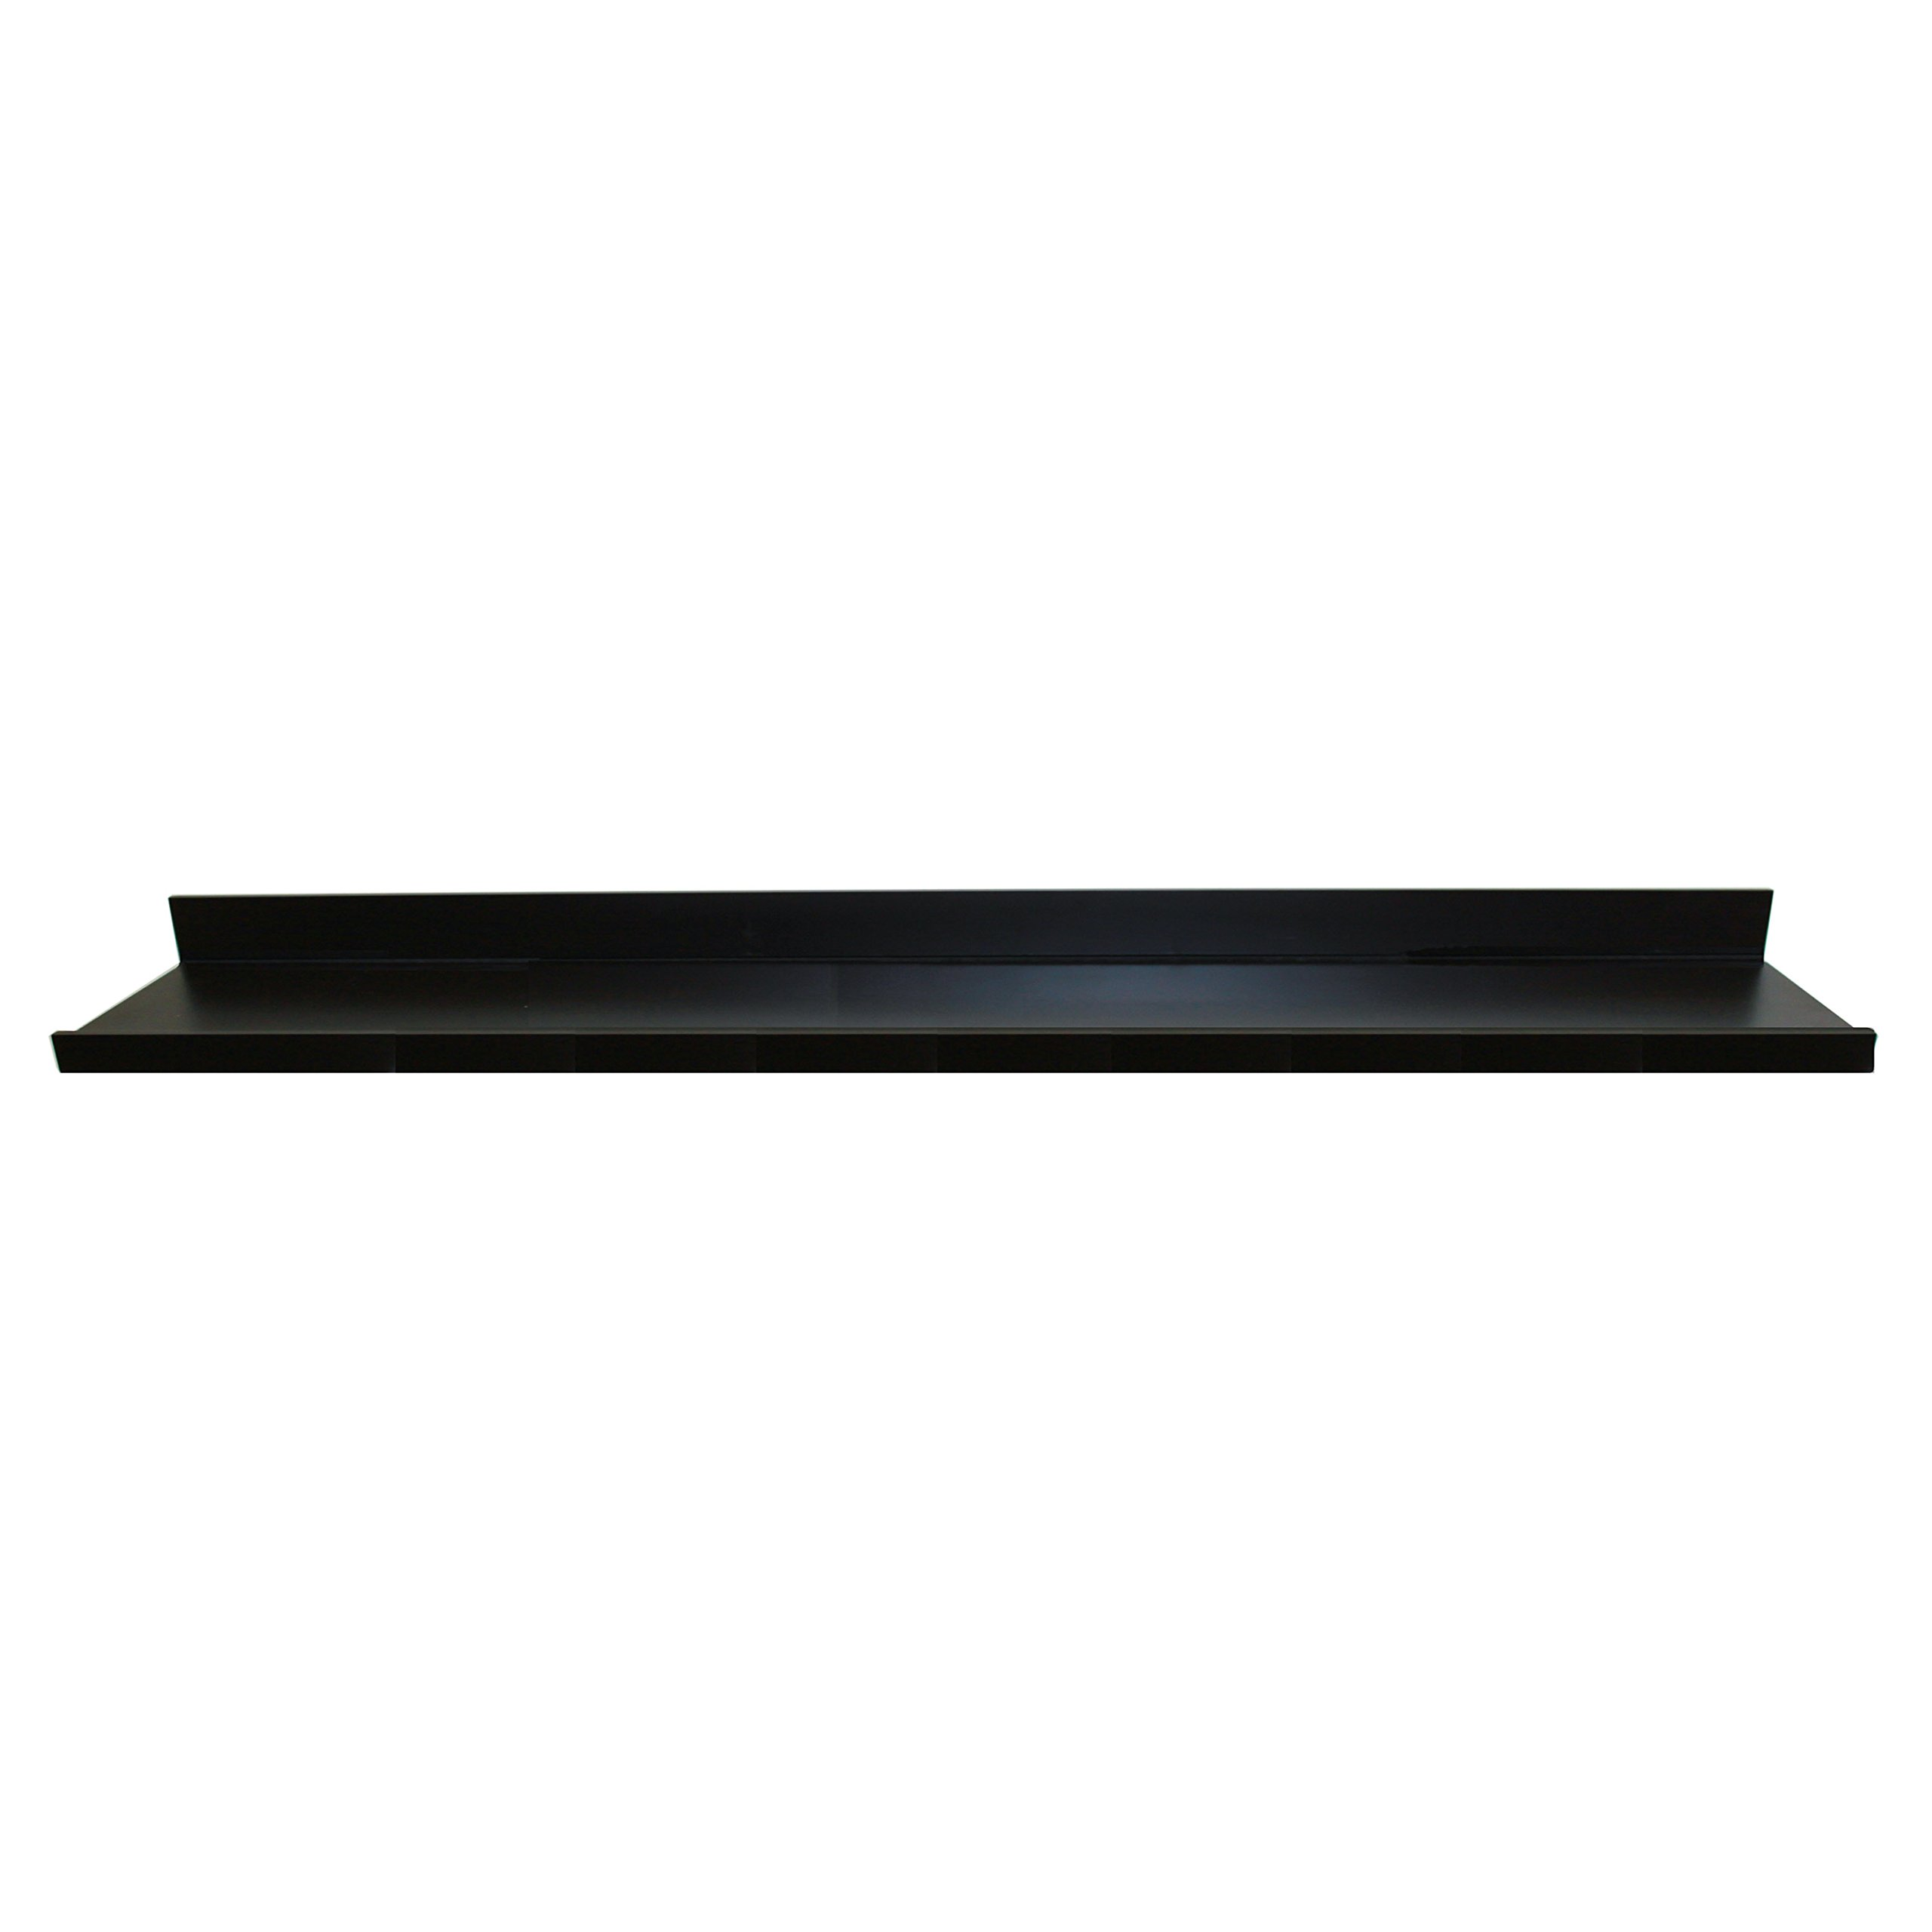 InPlace Shelving 9084684 Floating Shelf with Picture Ledge, Black, 72-Inch Wide by 4.5-Inch Deep by 3.5-Inch High